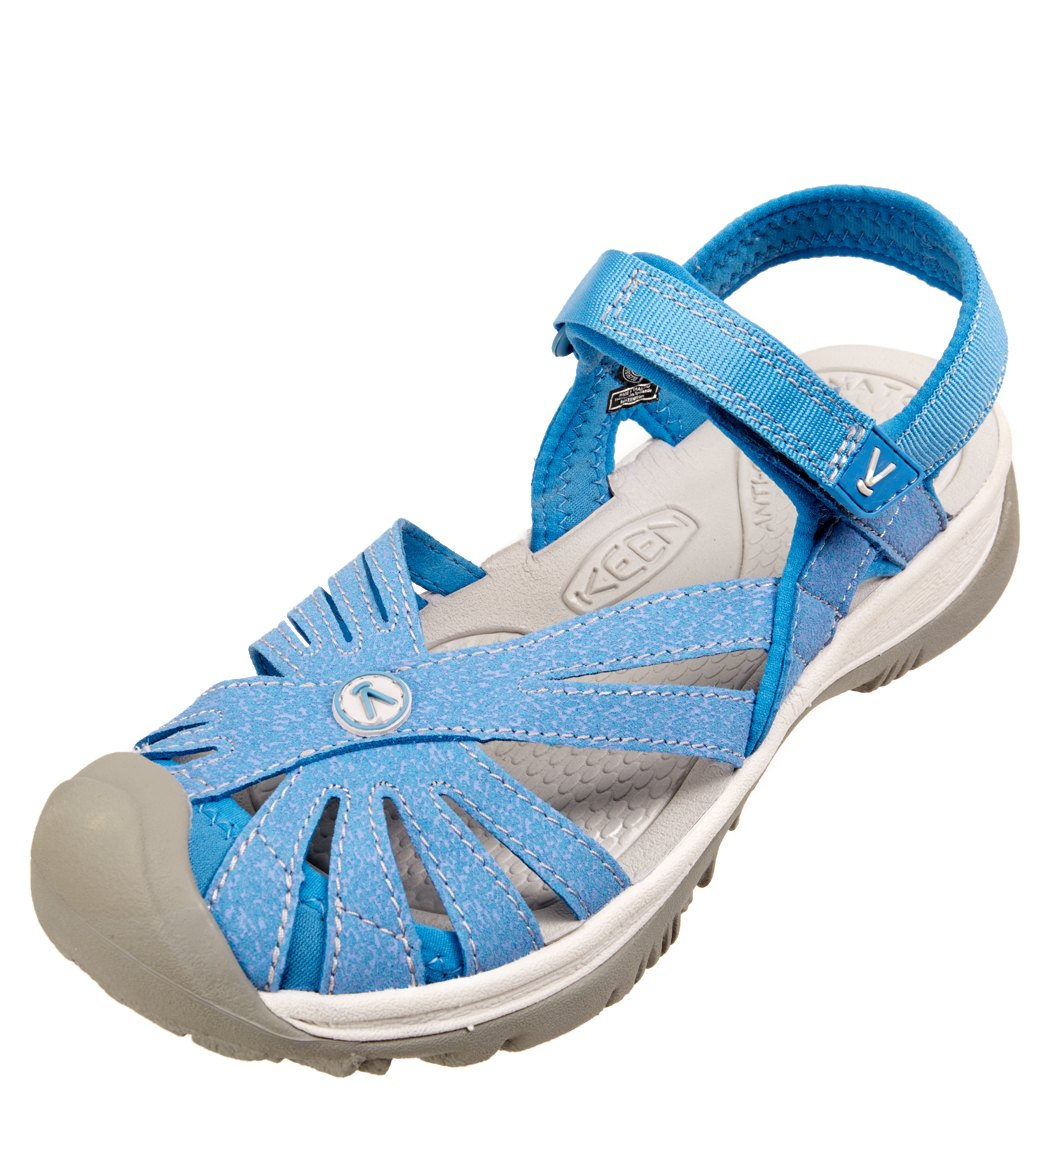 6c9ad3b4a985 Keen Women s Rose Sandal at SwimOutlet.com - Free Shipping